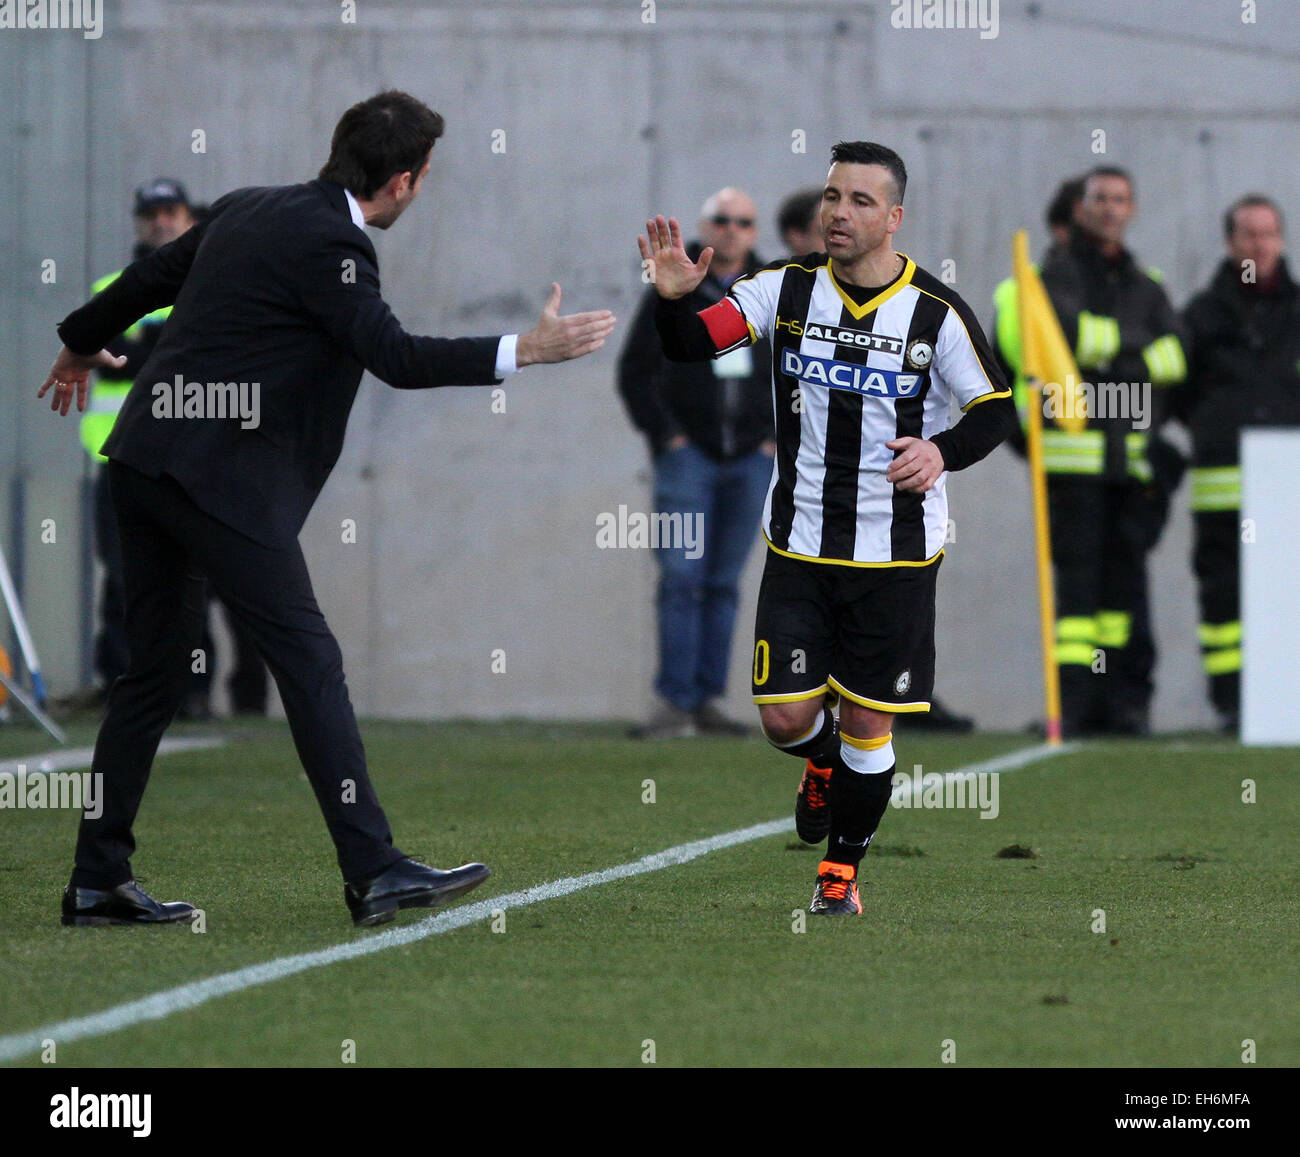 Udine, Italy. 8th March, 2015. Udinese's forward Antonio Di Natale celebrates goal 1-1 with Udinese's coach Andrea Stock Photo